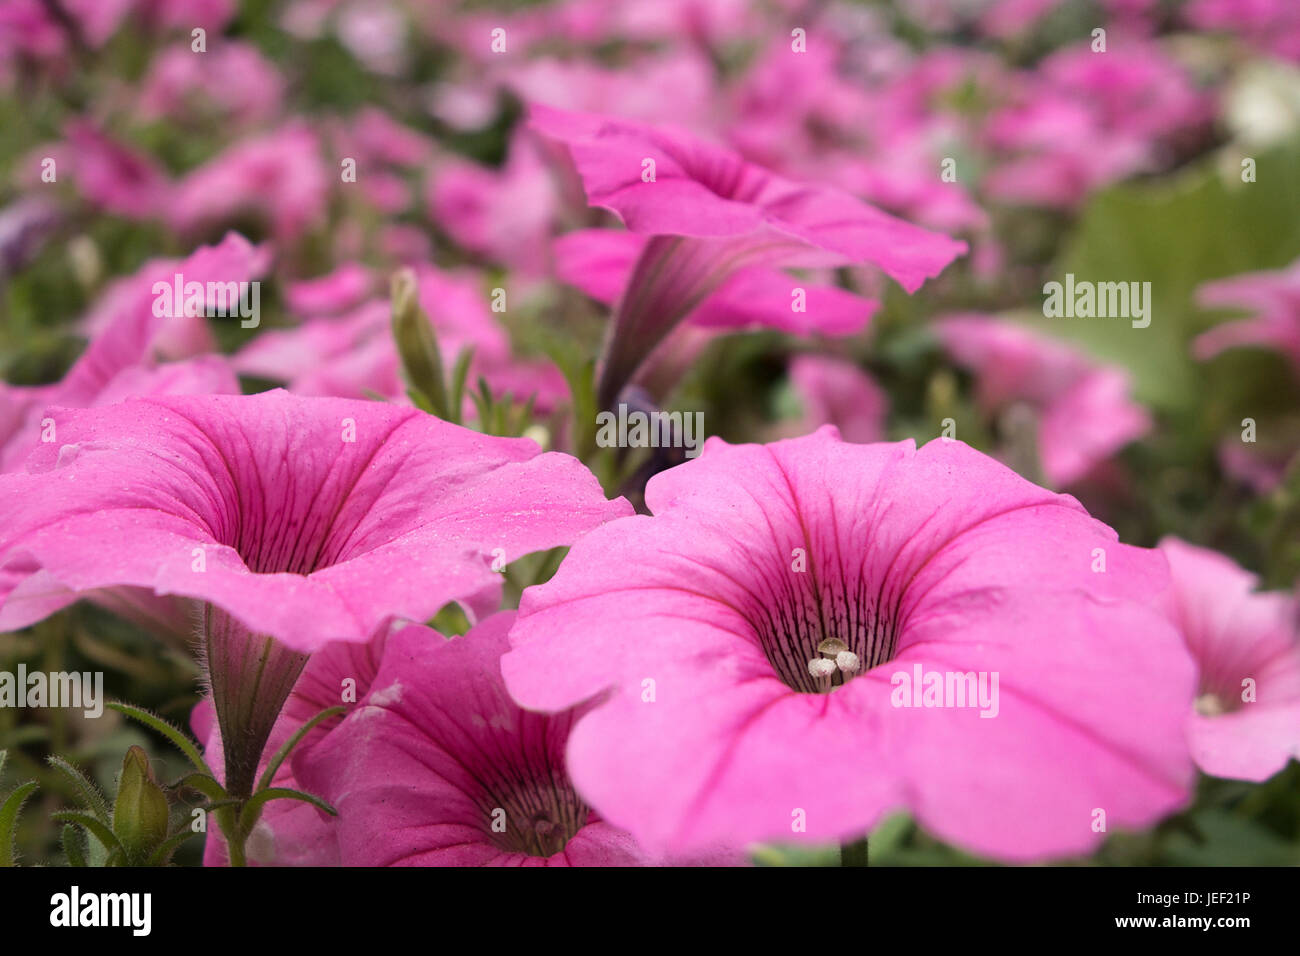 Field Of Pink Flowers Stock Photo 146619026 Alamy